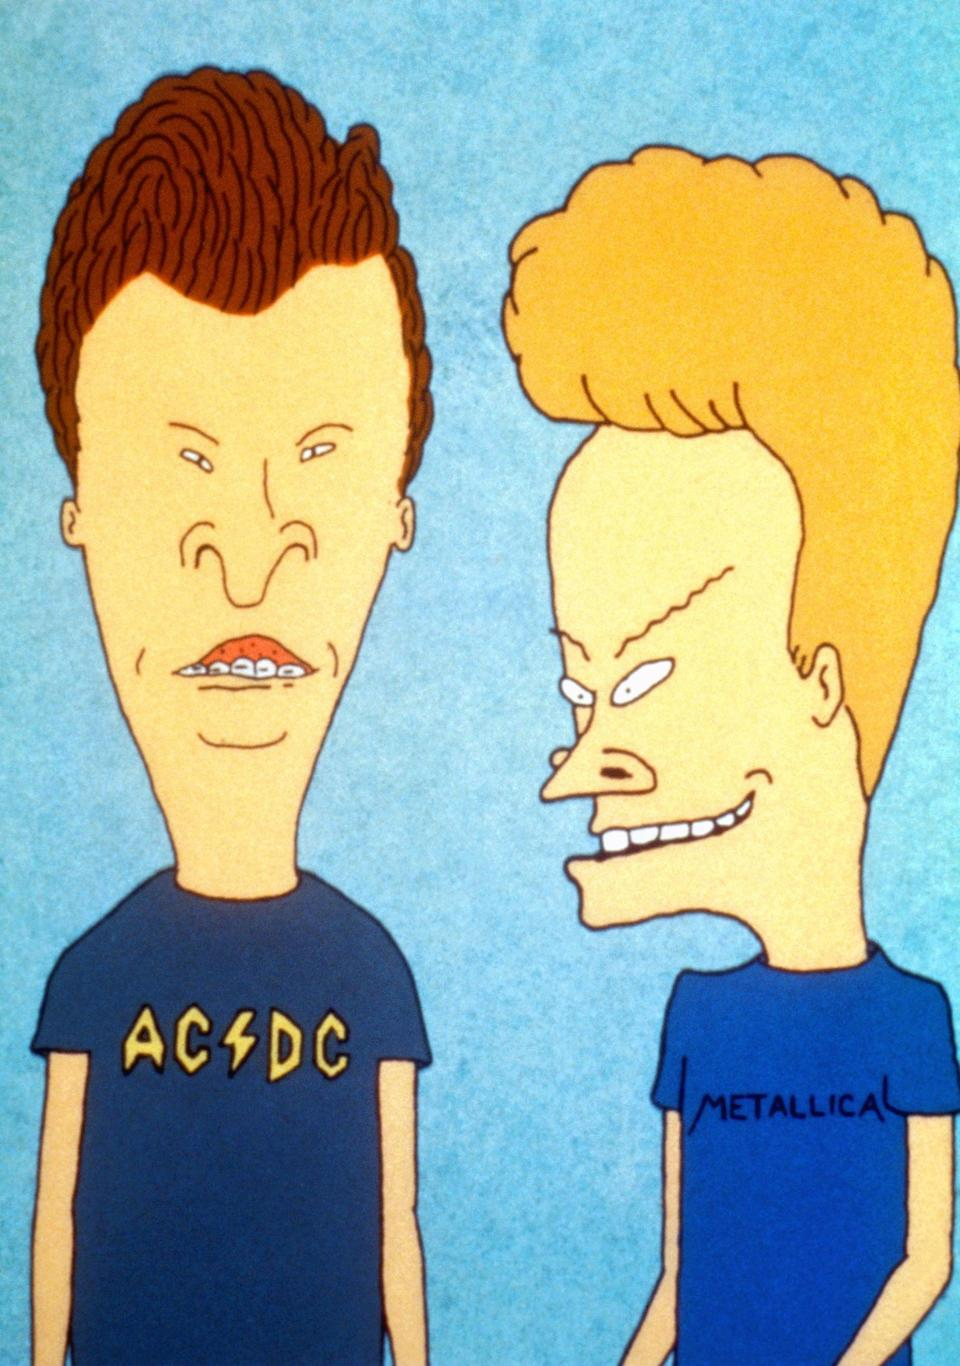 <ul> <li><b>What to wear for Butt-Head:</b> Red shorts, a black AC/DC t-shirt, and a slicked-back rockabilly hairstyle. Bonus points for fake braces.</li> <li><b>What to wear for Beavis:</b> Gray shorts and a blue Metallica shirt; tease your blond hair up.</li> <li><b>How to act:</b> Just get the laugh down, and you're golden. Heh, heh, heh.</li> </ul>